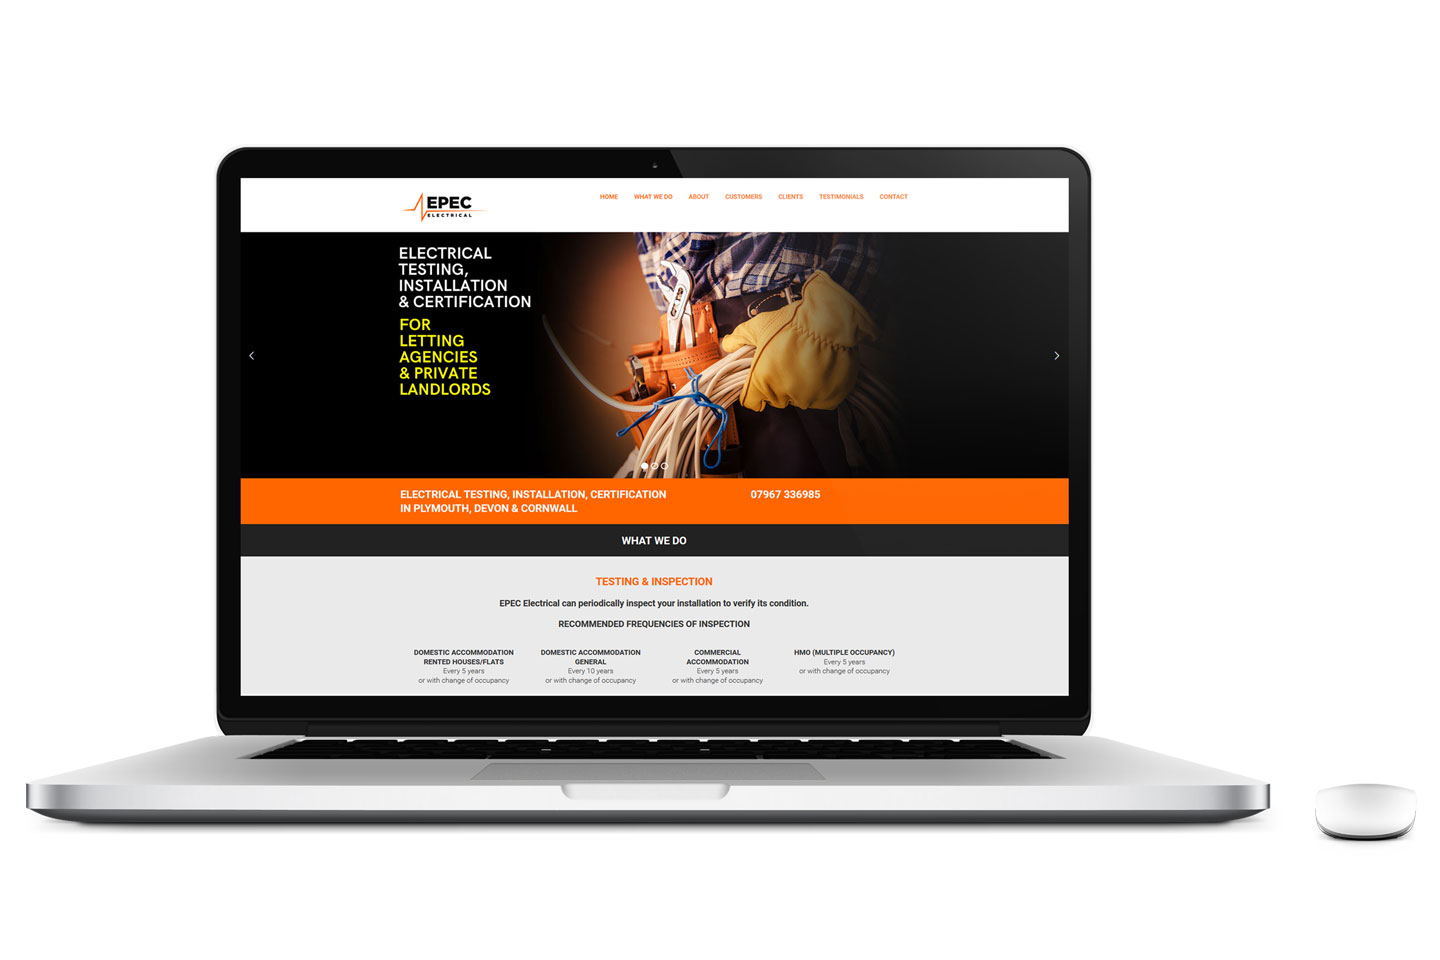 Evolve Promotion - EPEC Electrical Website